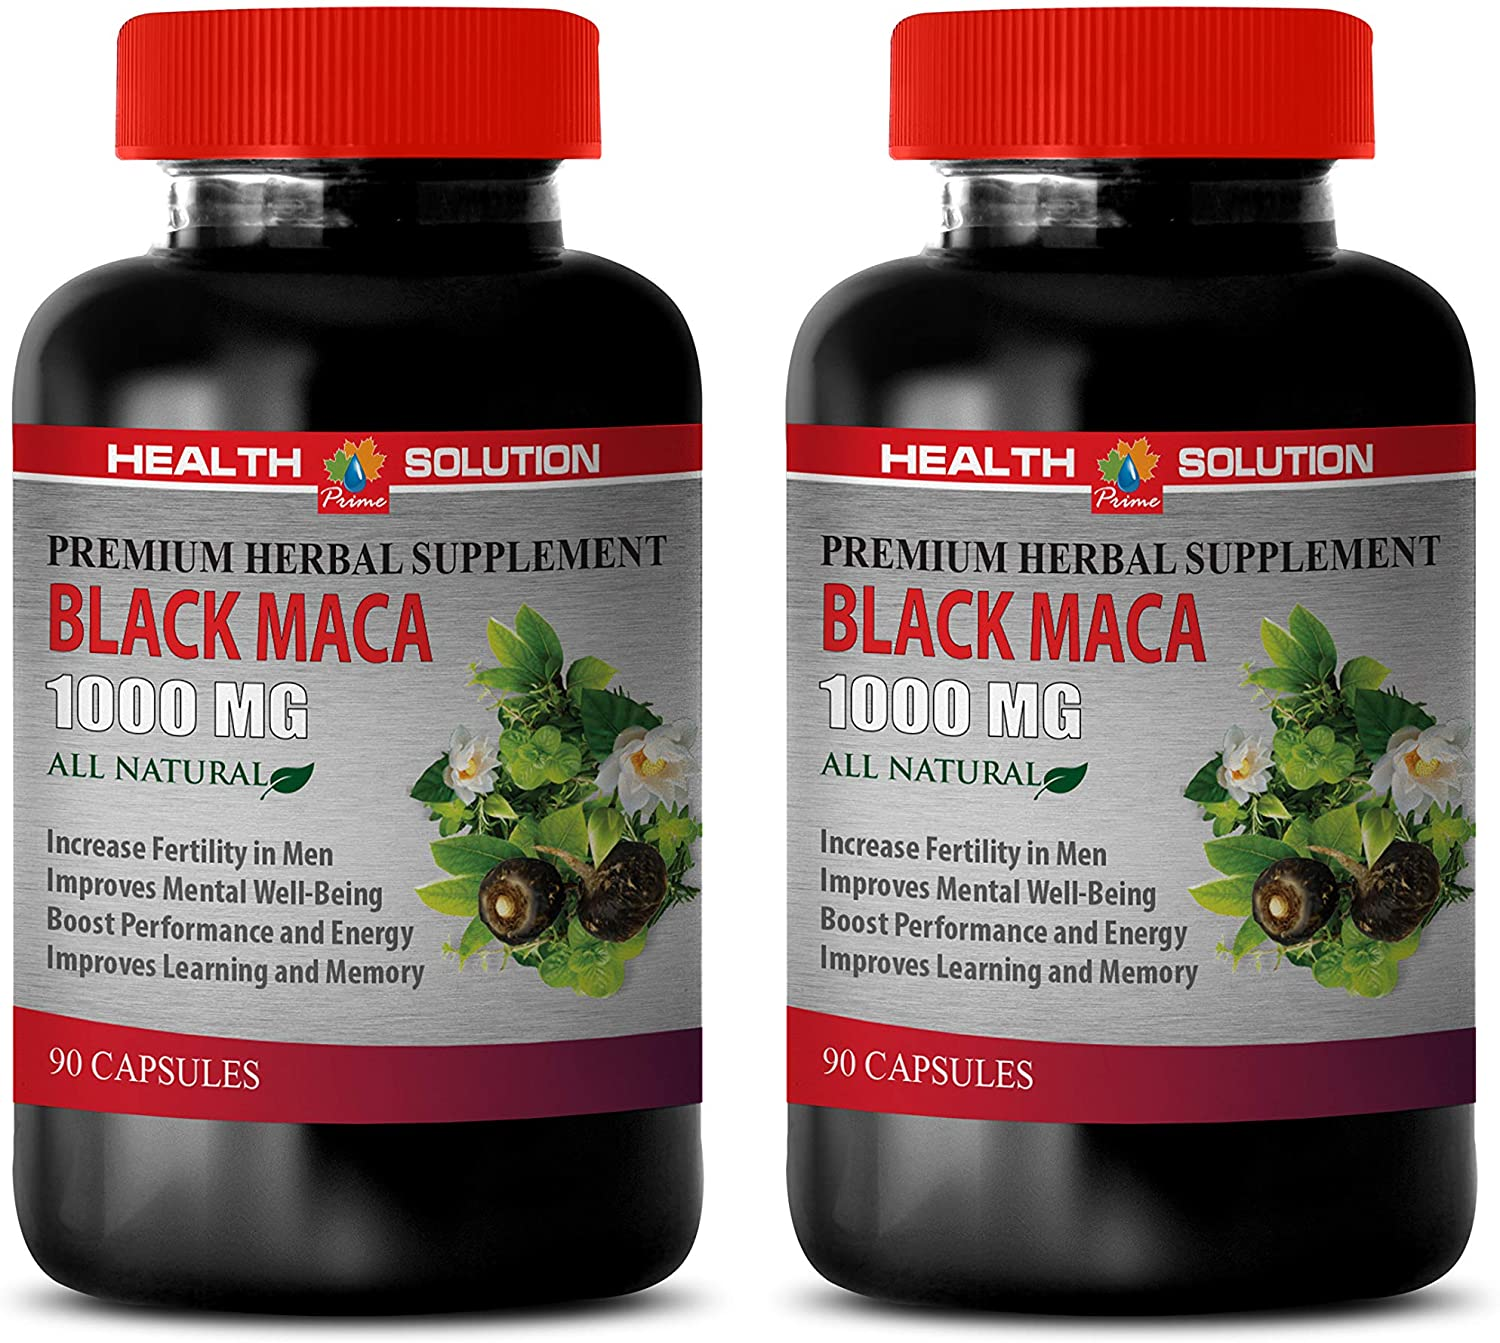 Male Energy Supplements - Black MACA 1000 MG - Premium Herbal Supplement - maca Root Extract Complex - 2 Bottles 180 Vegetable Capsules